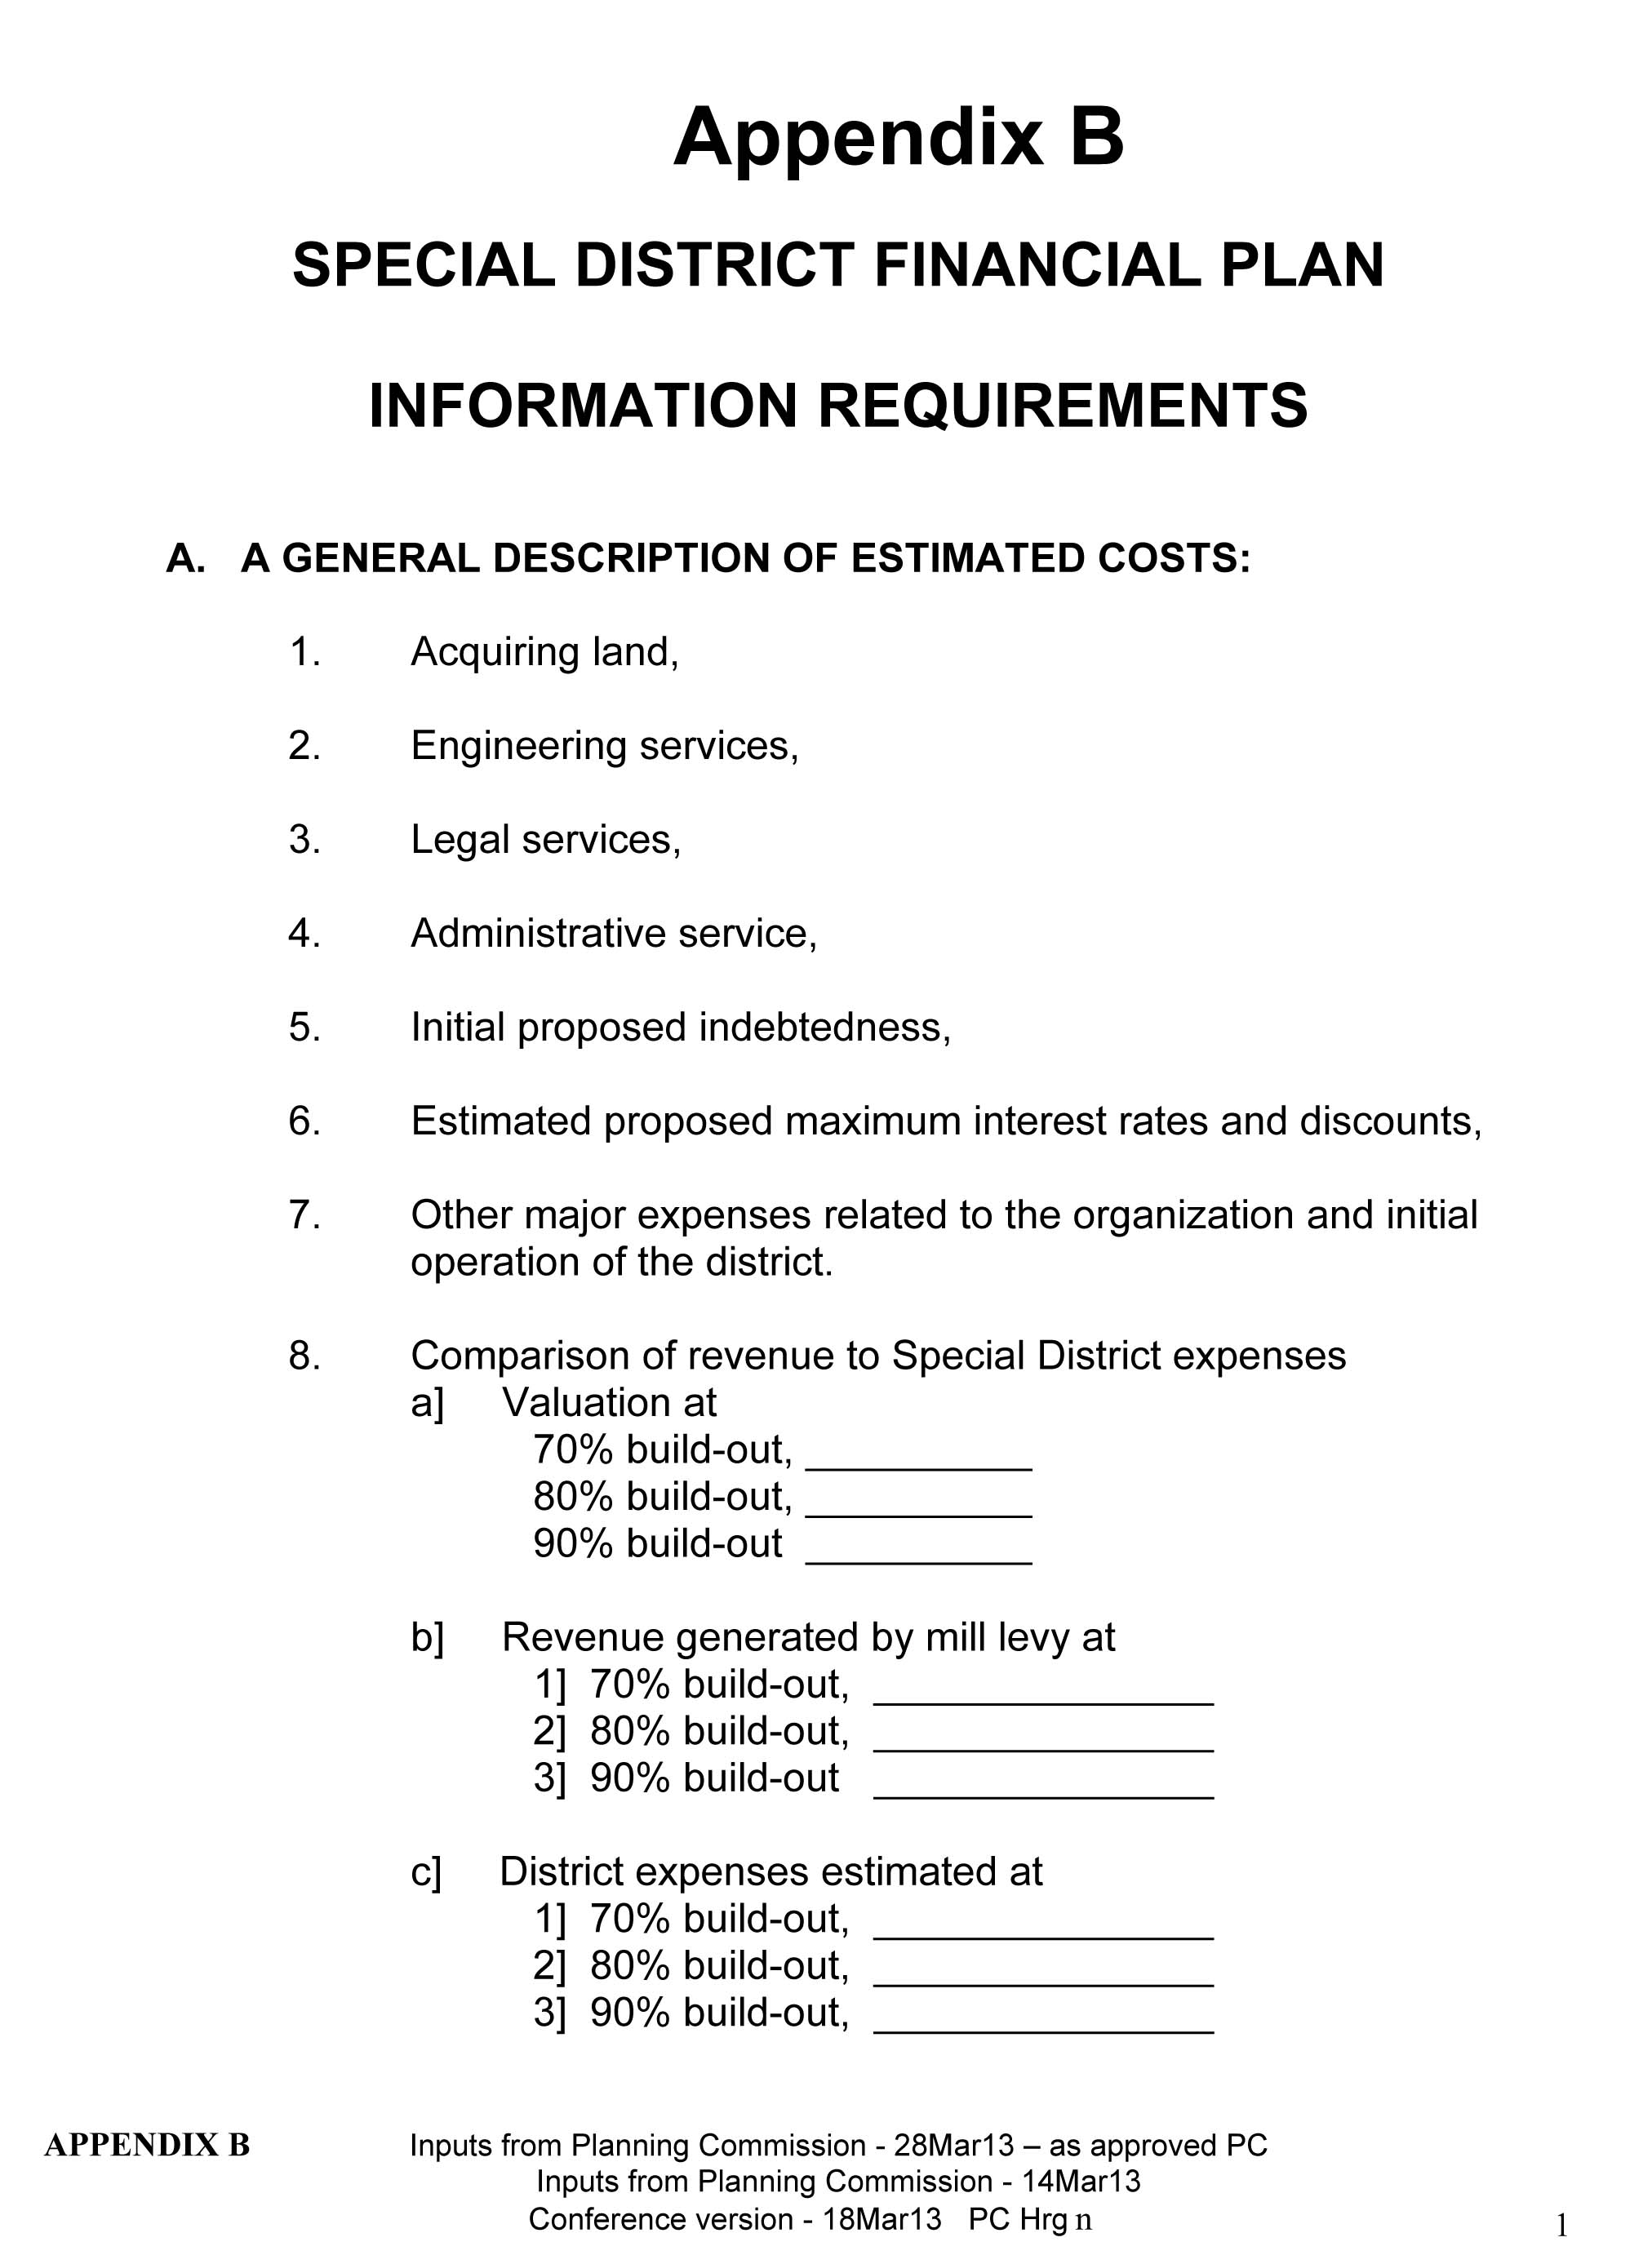 As approved by PC 130410 version xii Ric M _Draft Special District Reg_Conference Version of 10 Mar13_APPENDIX B_Financial Plan_3Apr13-1